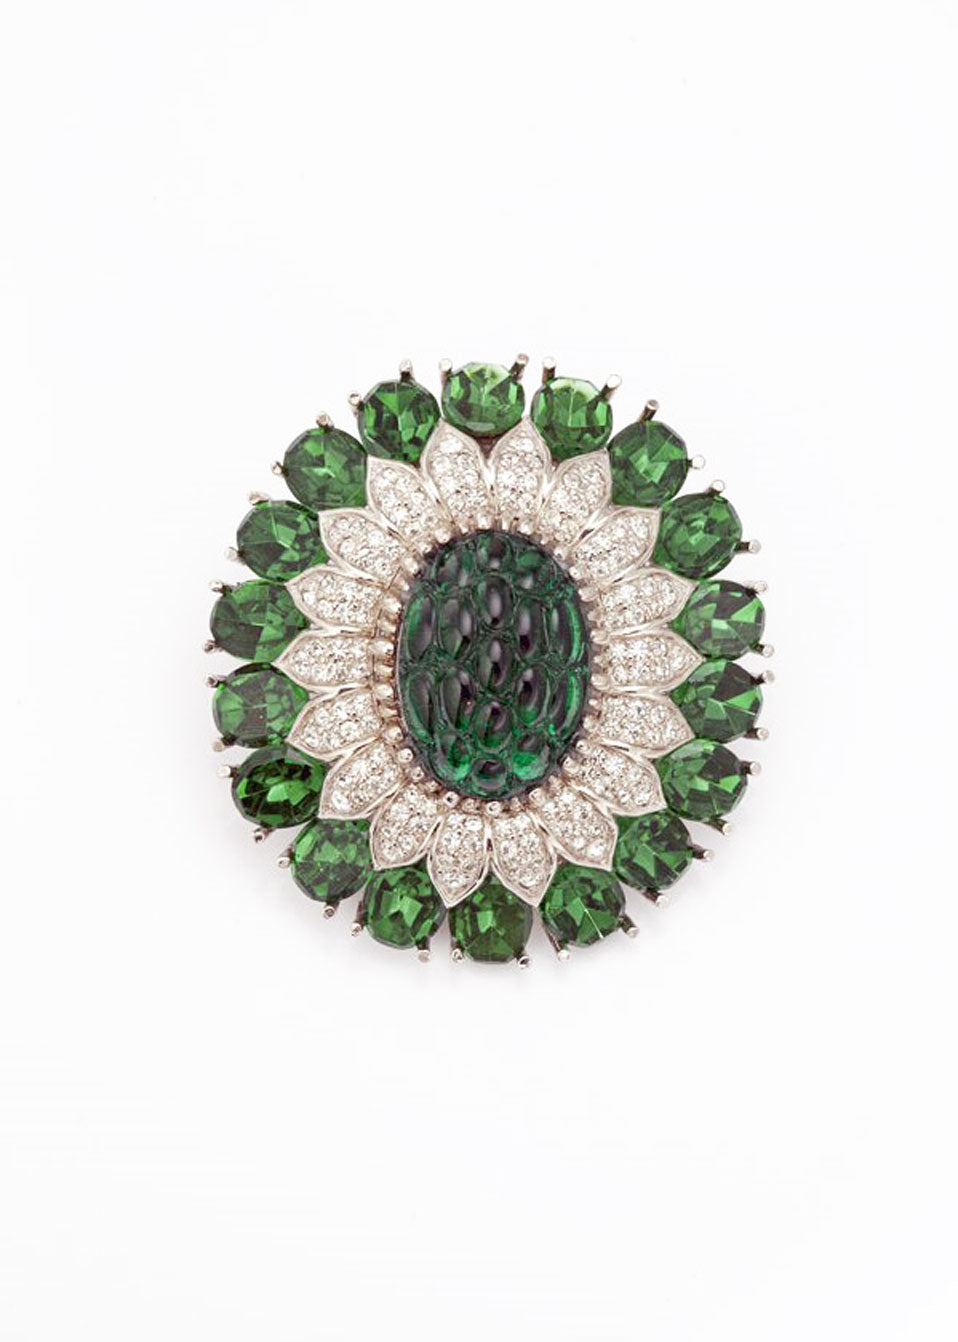 Large Tourmaline and Crystal Brooch